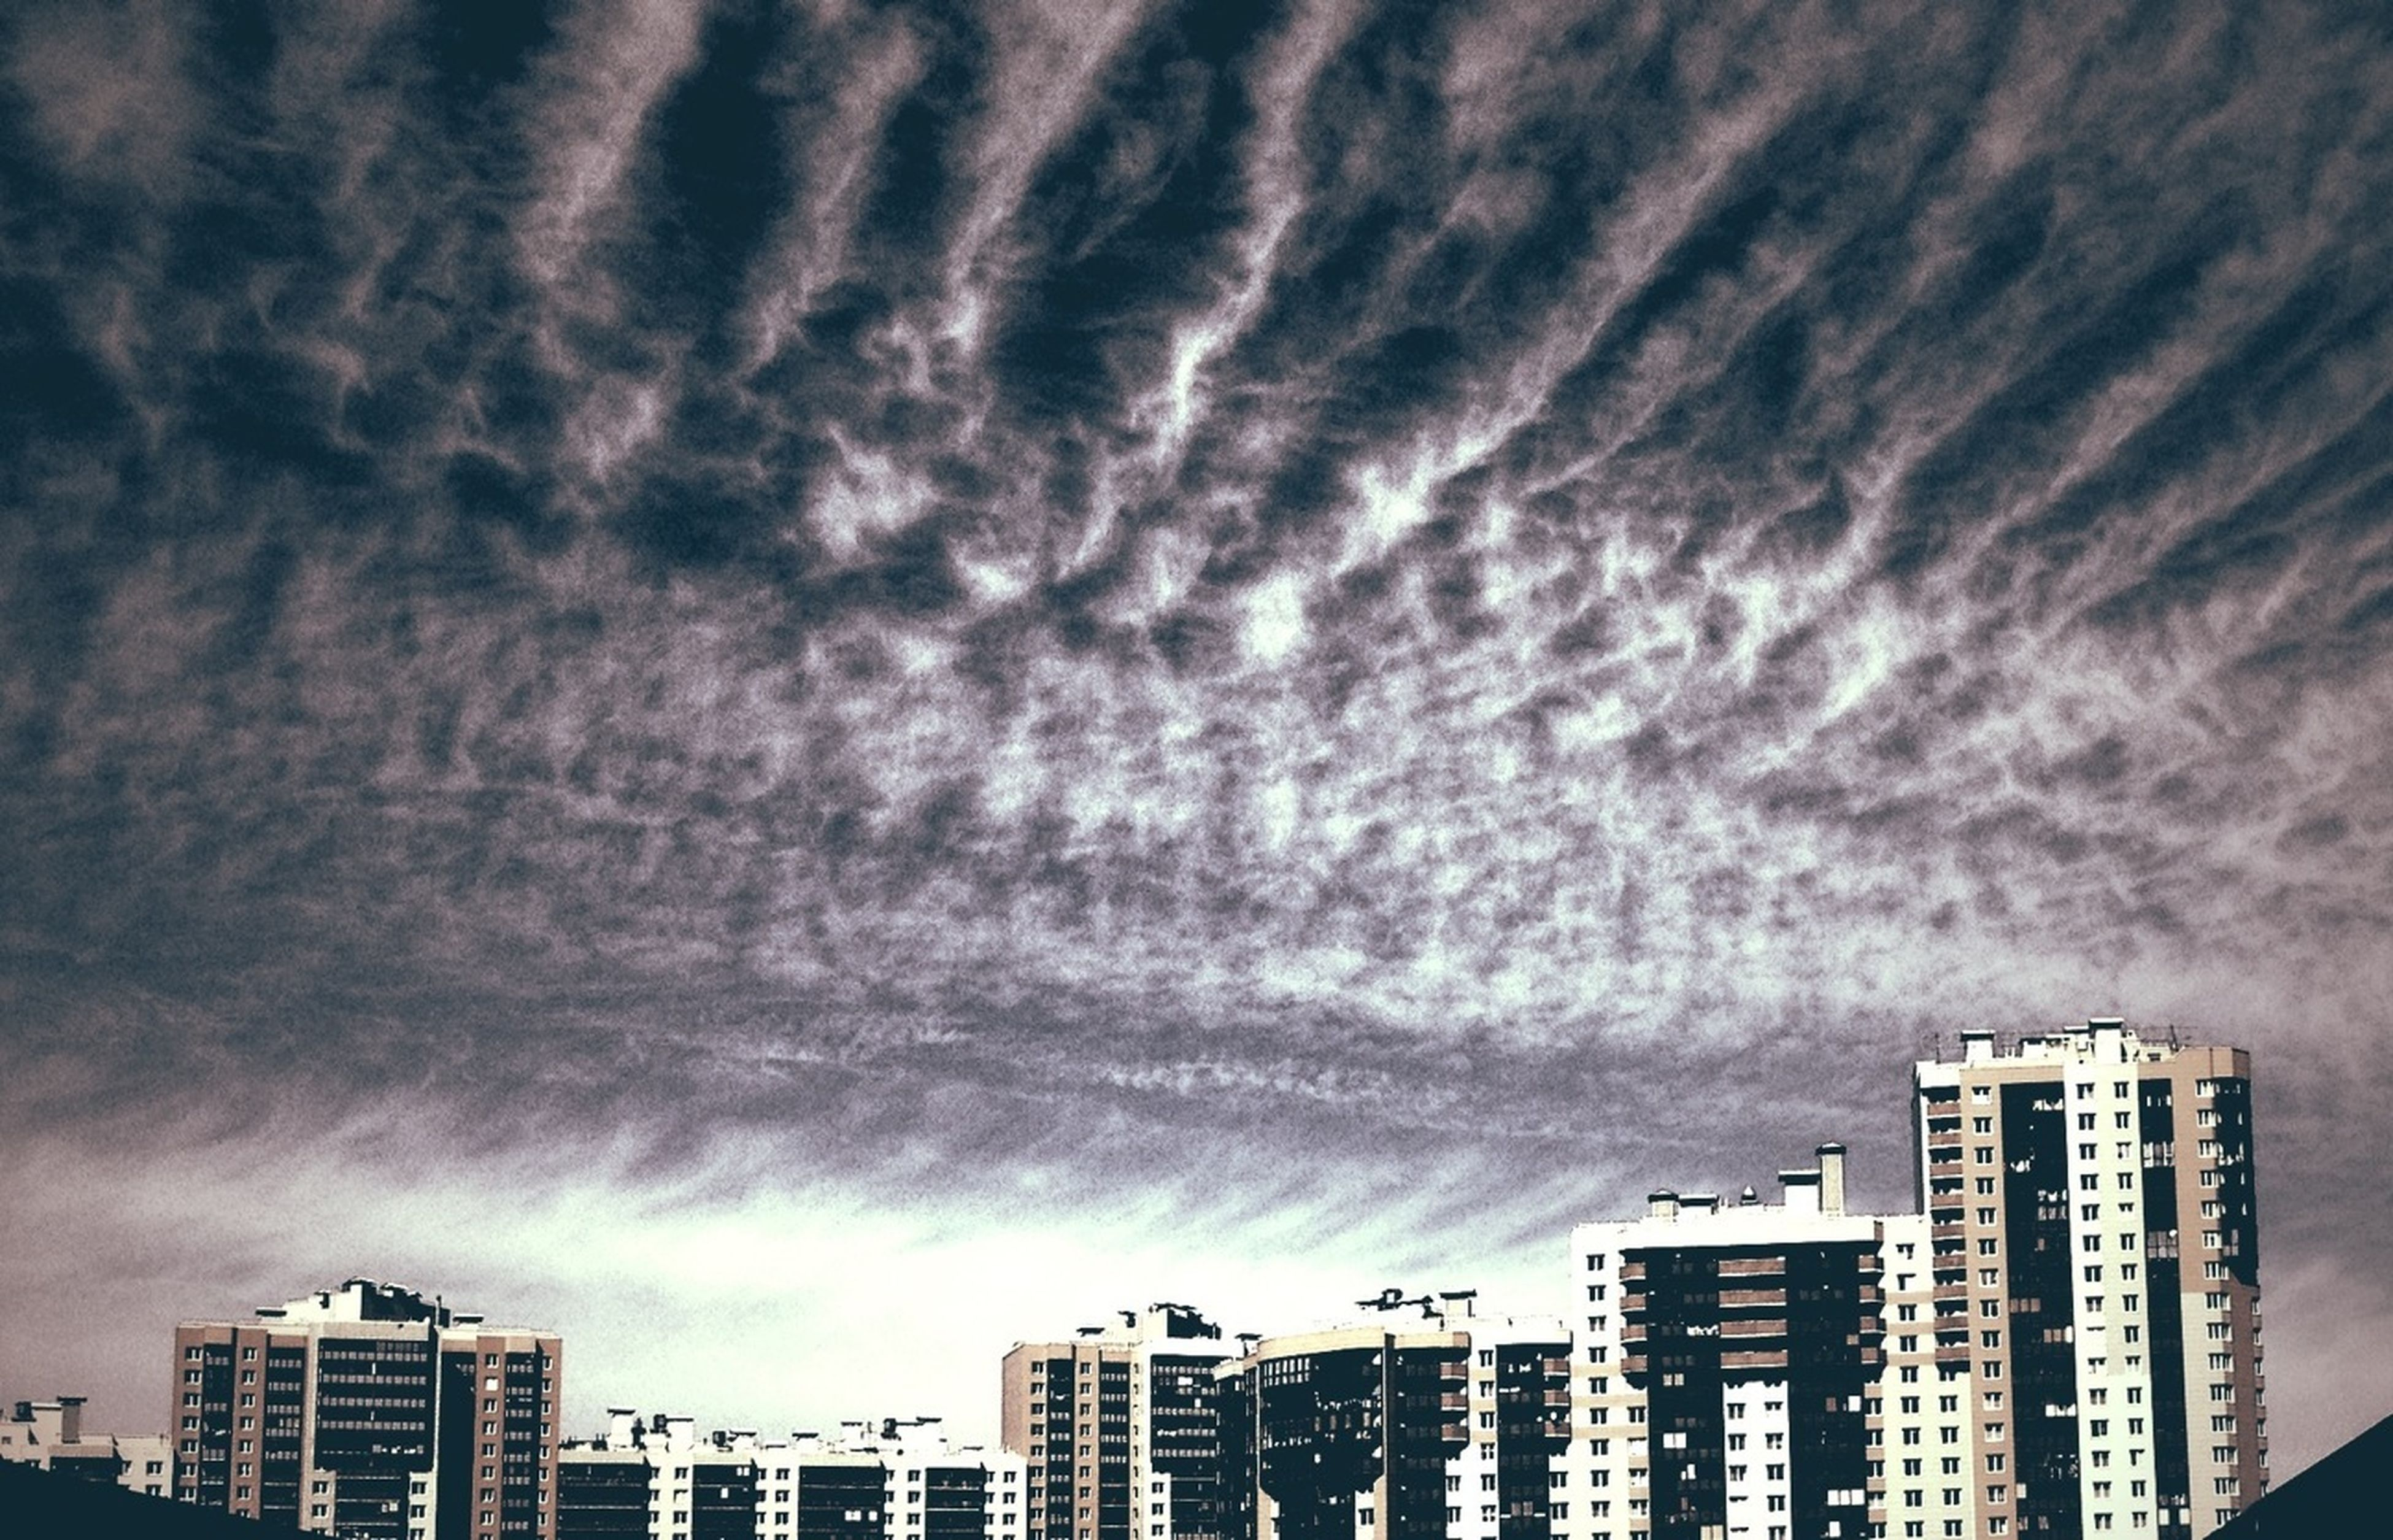 building exterior, architecture, built structure, sky, city, cloud - sky, cloudy, weather, low angle view, overcast, building, residential building, skyscraper, storm cloud, cloud, cityscape, residential structure, modern, outdoors, no people